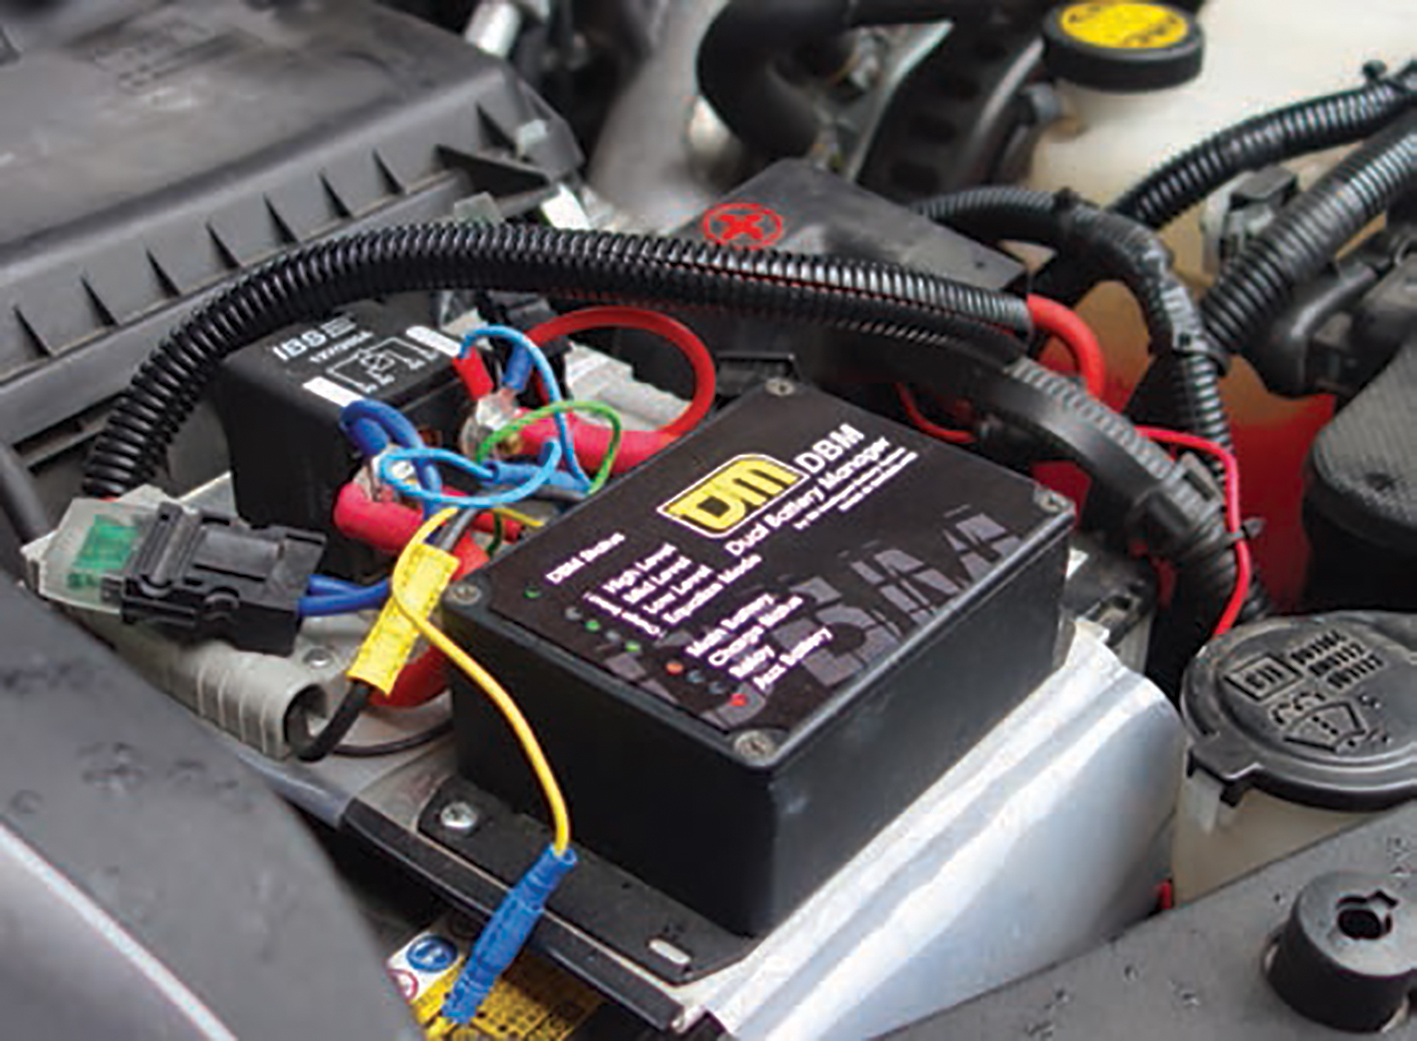 Tjm Dual Battery System Wiring Diagram 38 Images Car Manager Aaa Magazine 2 Le At